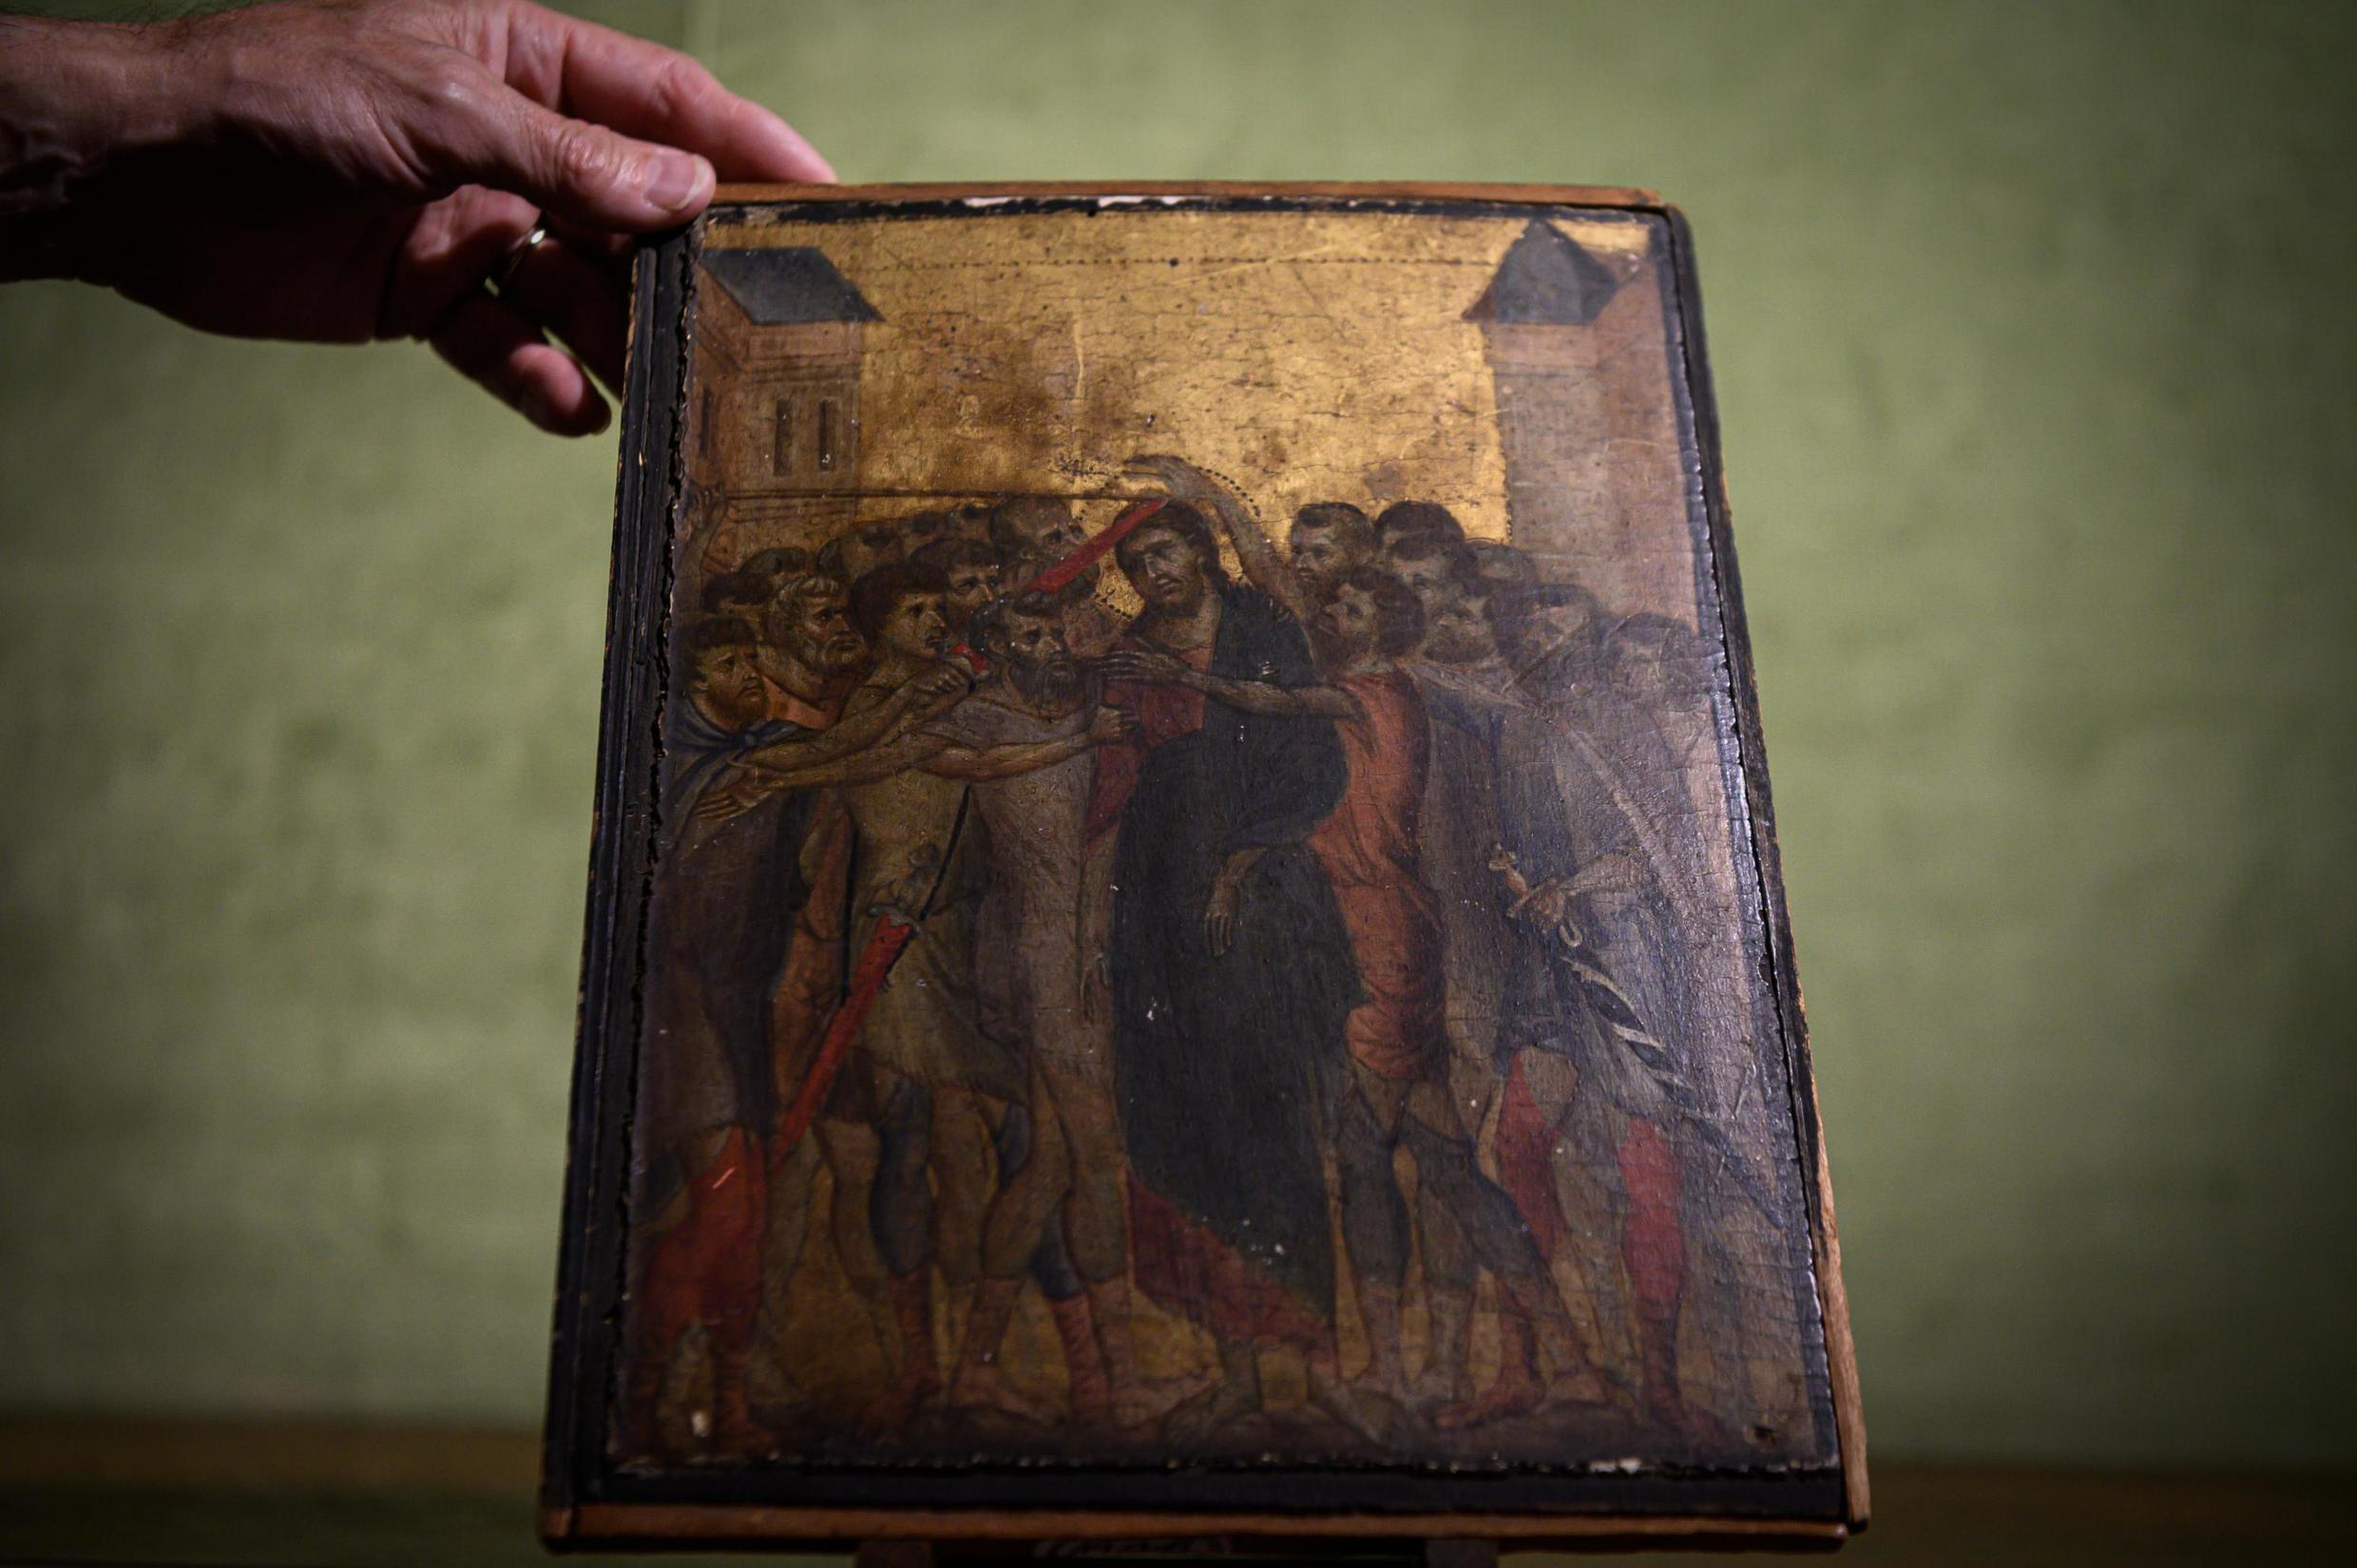 """This photo taken on September 23, 2019 in Paris shows a painting entitled """"the Mocking of Christ"""" by the late 13th century Florentine artist Cenni di Pepo also known as Cimabue. The painting will be auctioned in Senlis on October 27, 2019."""